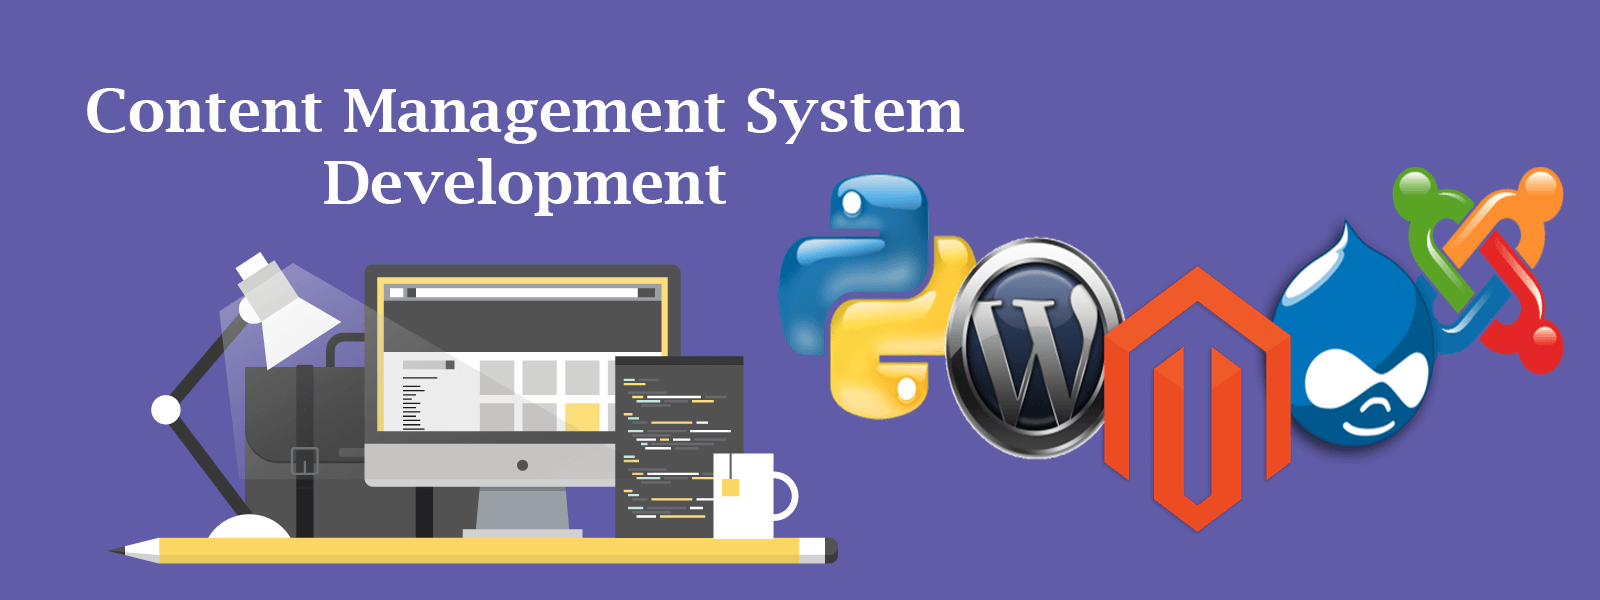 Choosing an open source CMS based on PHP and MySQL & Benefits of Using a Content Management System